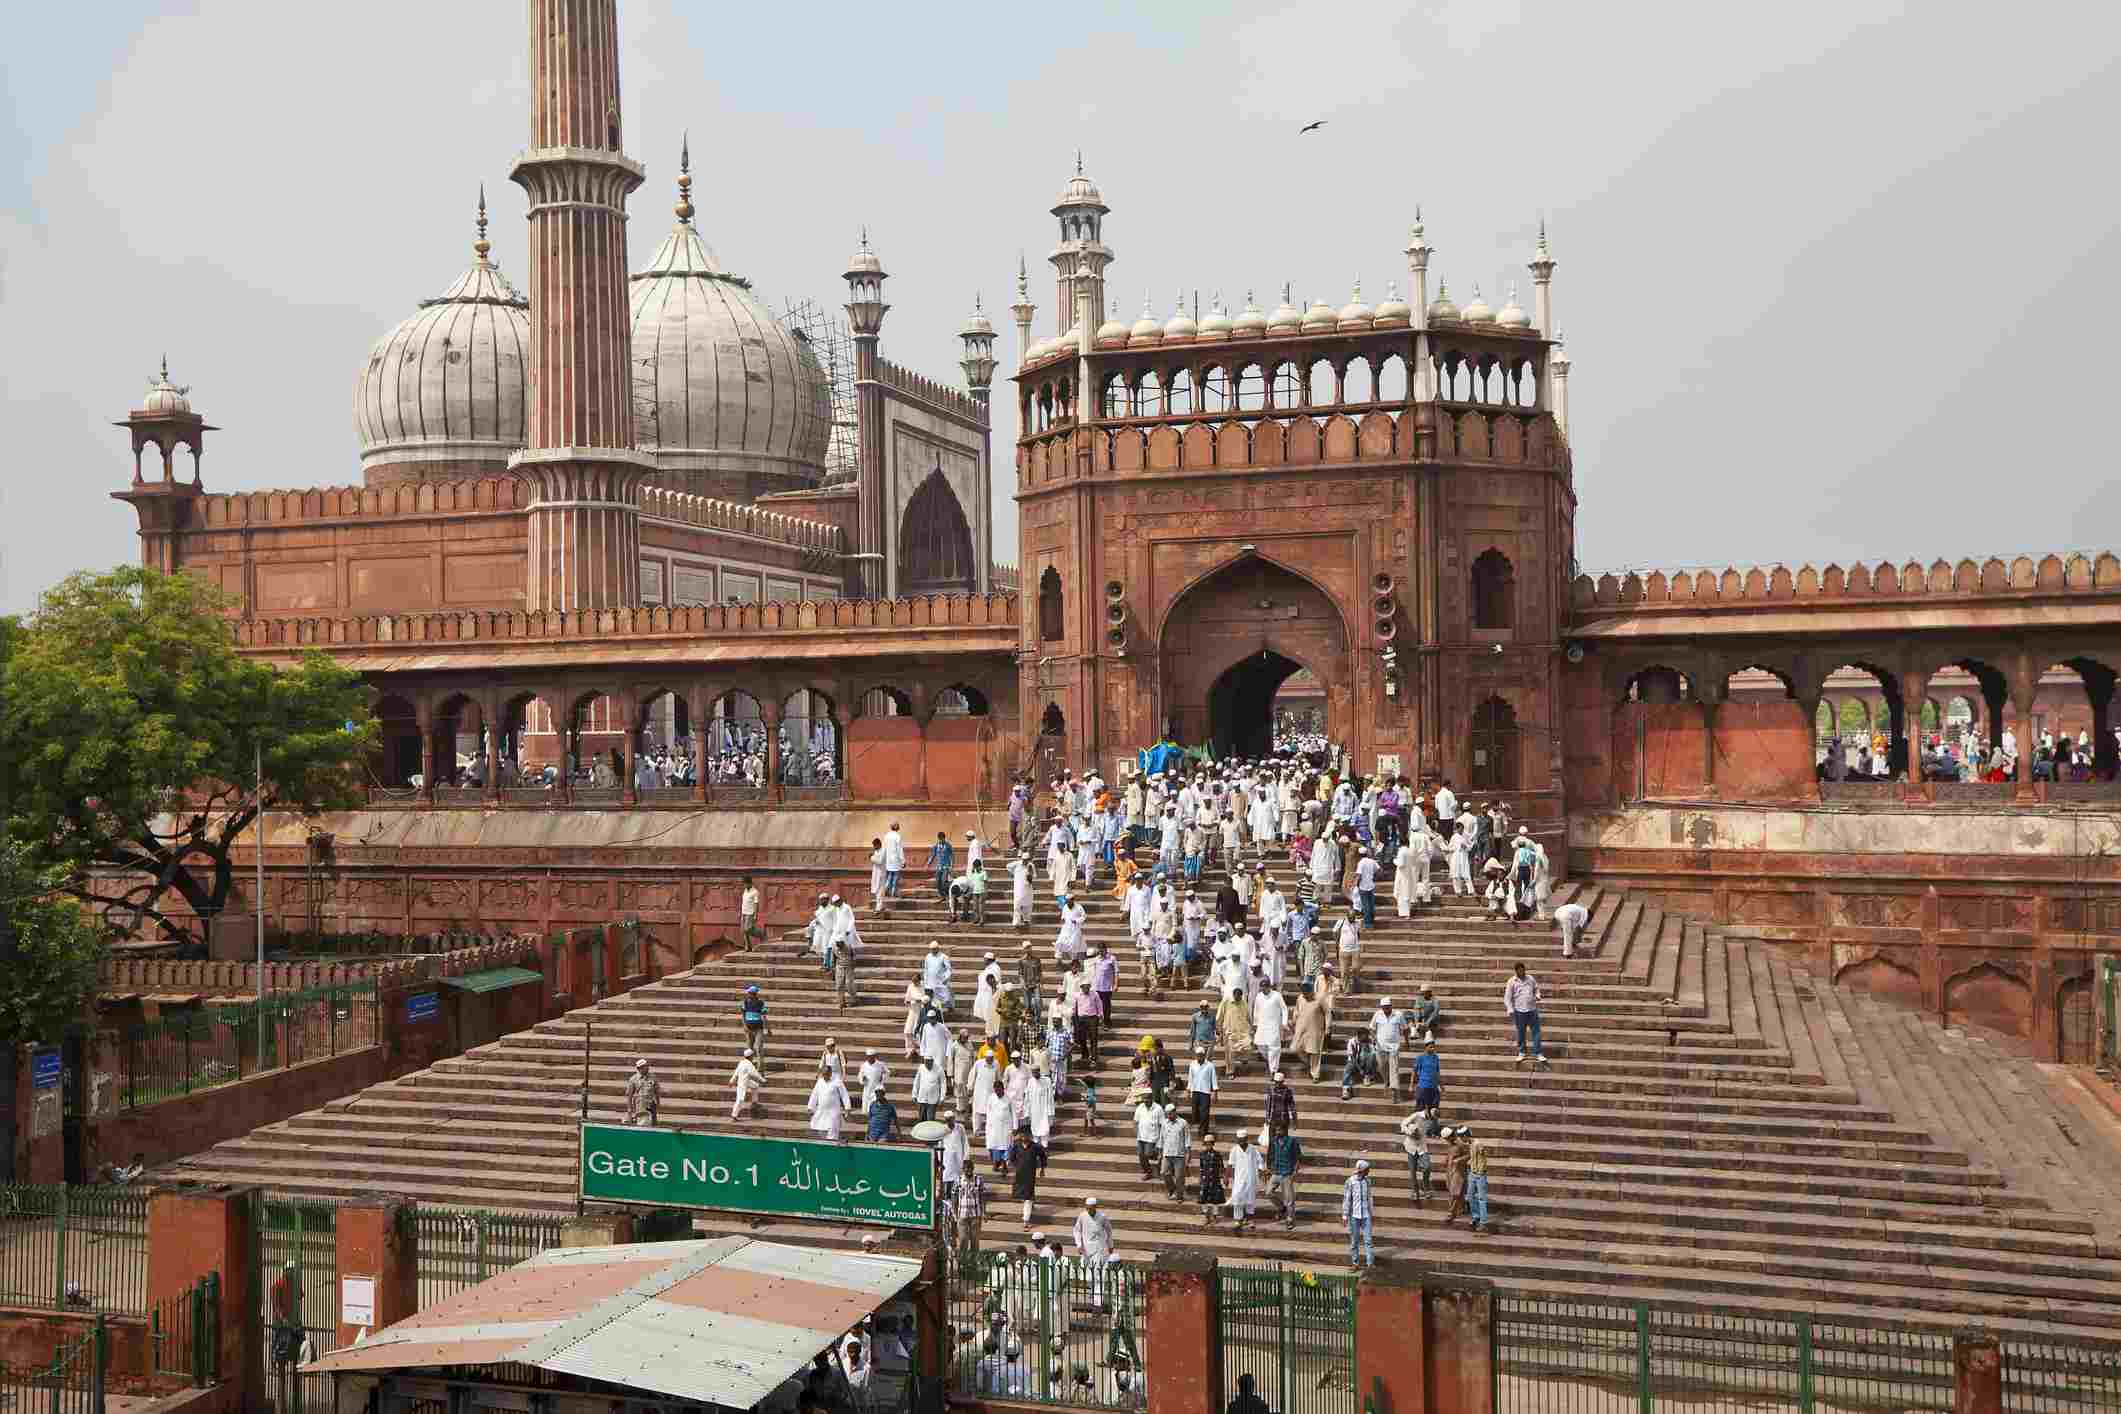 People leaving the Jama Masjid (Friday Mosque) after the Friday Prayers, Old Delhi